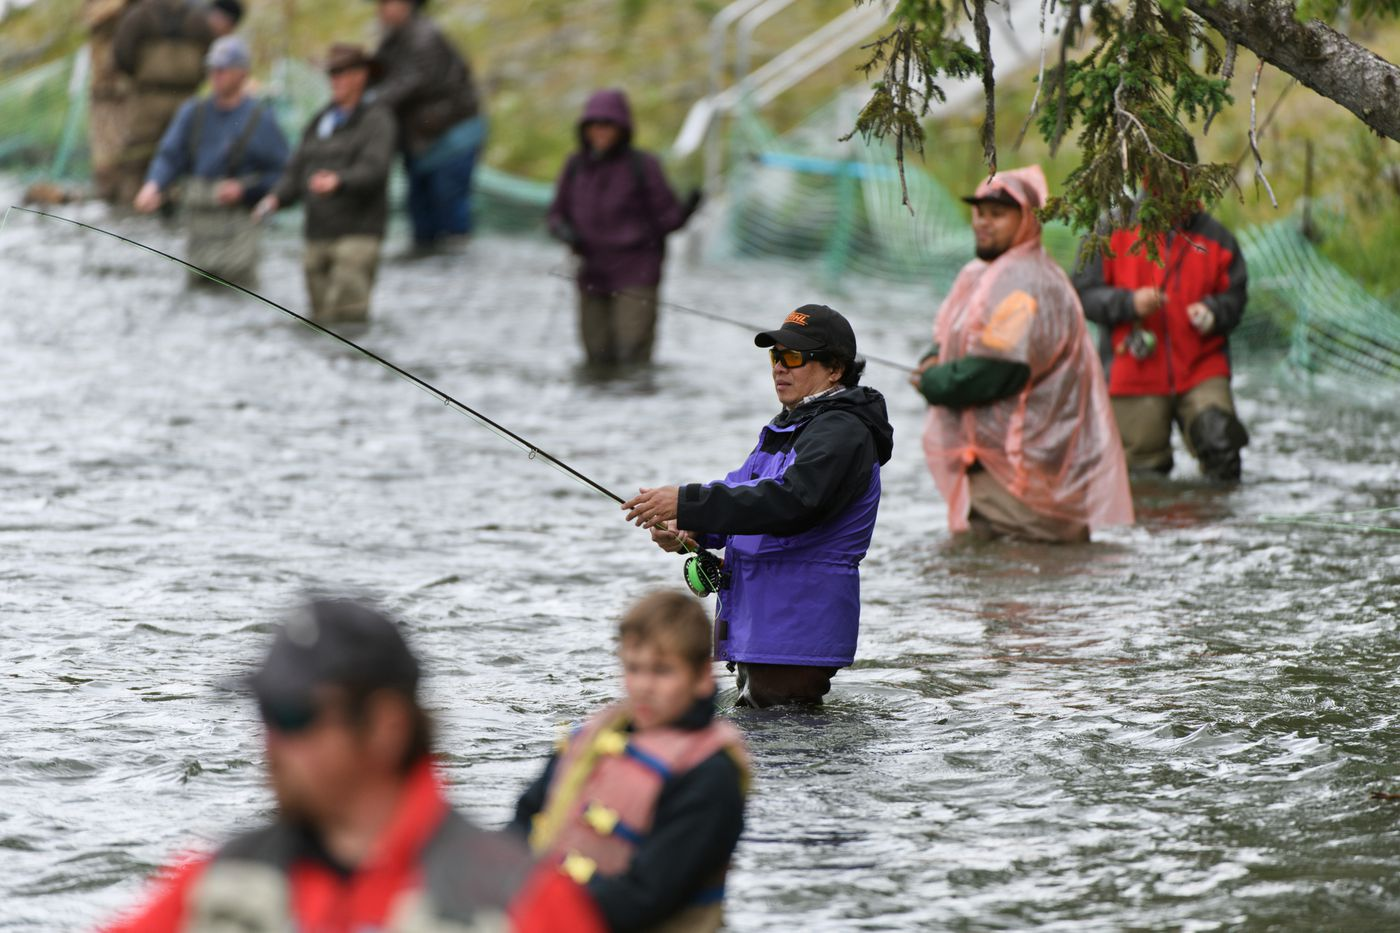 Michael Snow fishes on the Kenai River on June 22. Snow, from the Philippines, moved to the U.S. for educational opportunities for his three kids. (Marc Lester / ADN)